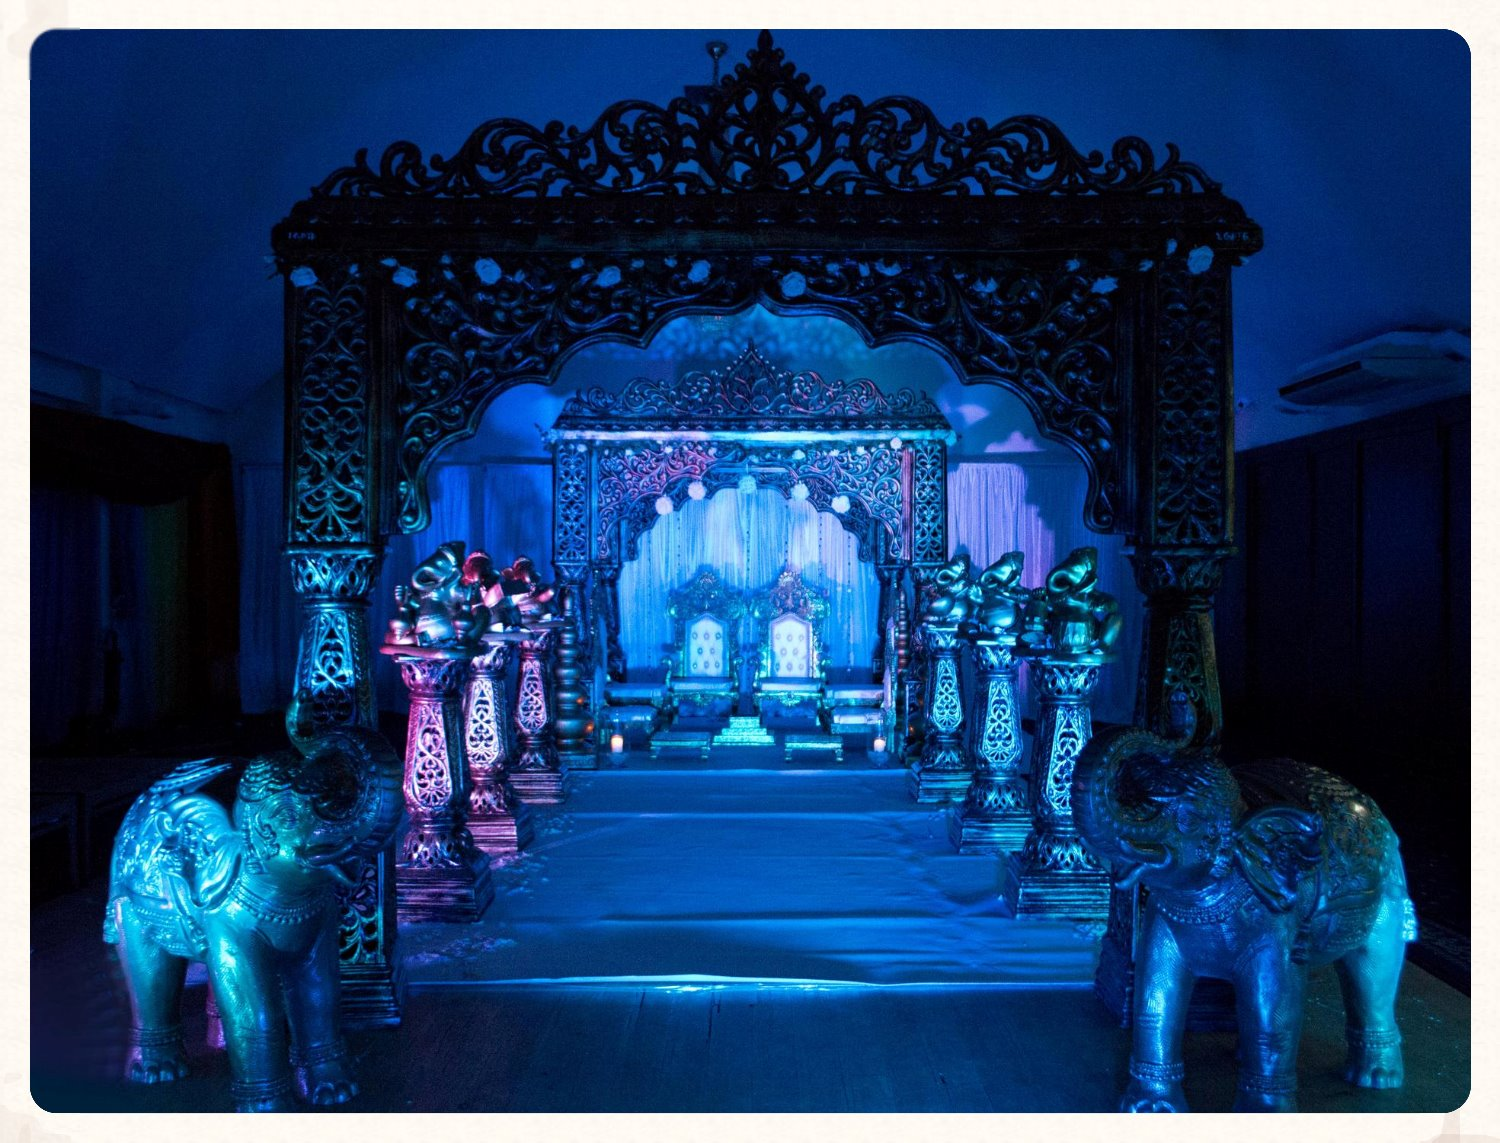 the jodha mandap (lighting)